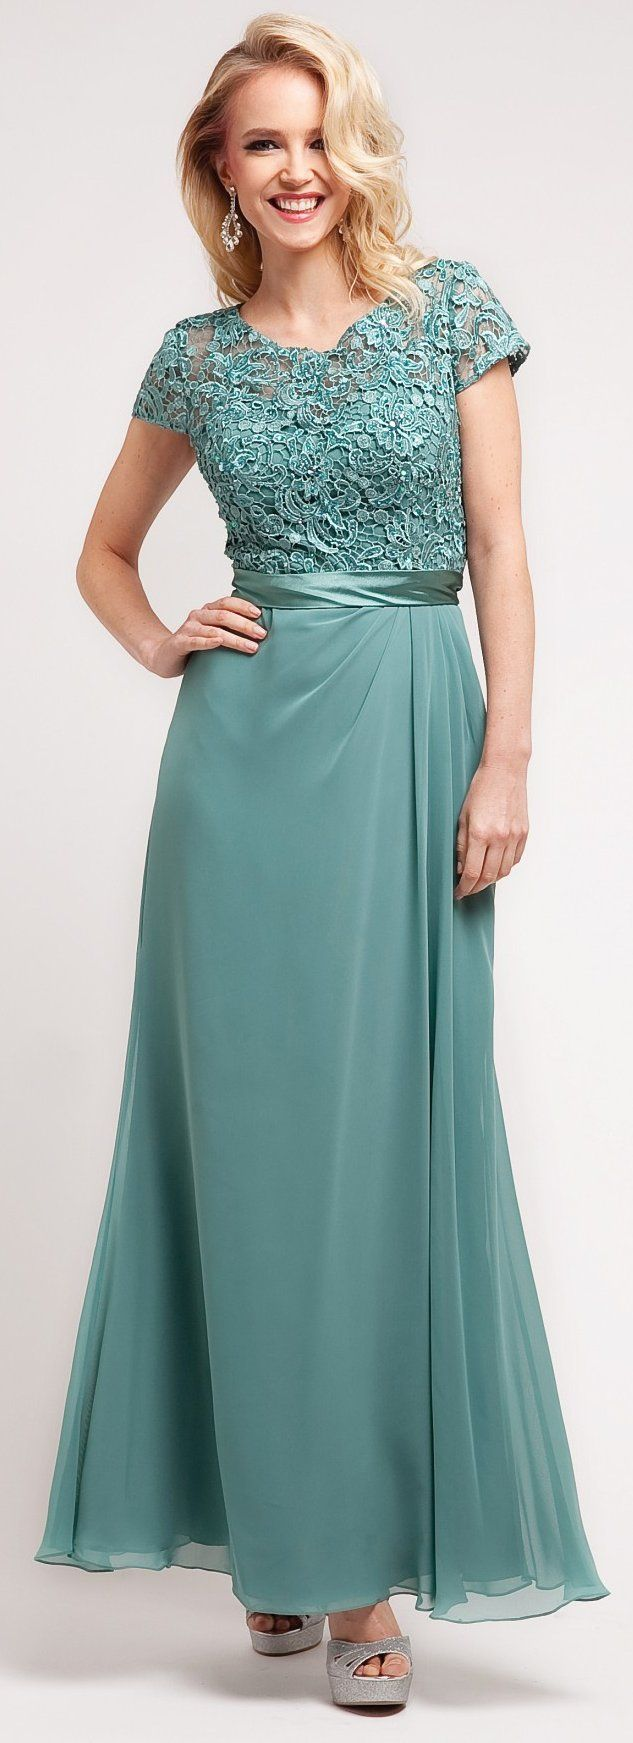 Mother of Groom Sage Green Dress Long Short Sleeve Lace Top | Sage ...